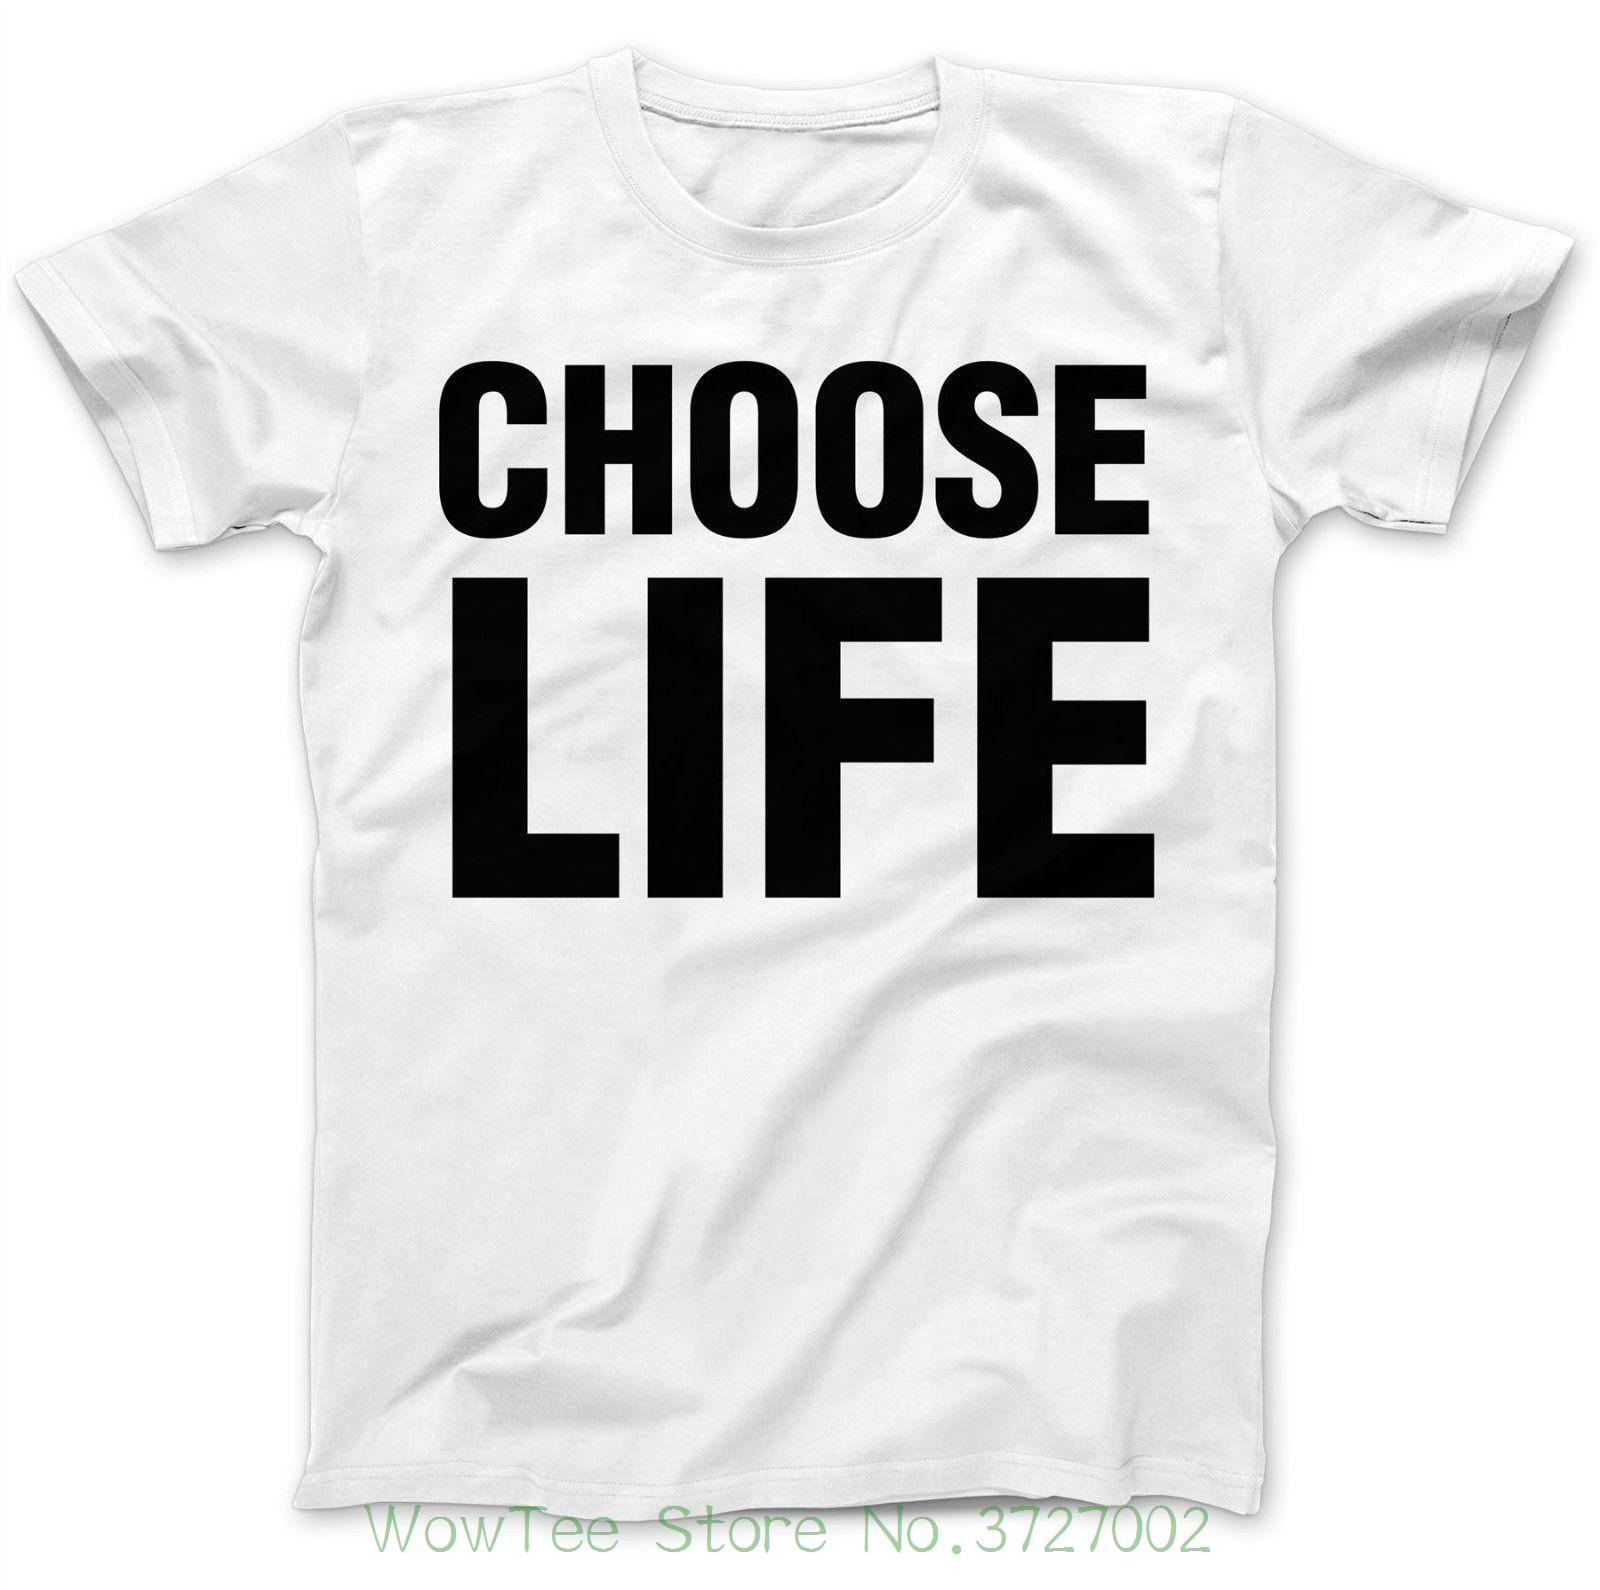 a1b8f6310 Choose Life 80's Iconic Music Costume Party Dress Up Fun Retro Wham T-shirt  T Shirt Summer Famous Clothing